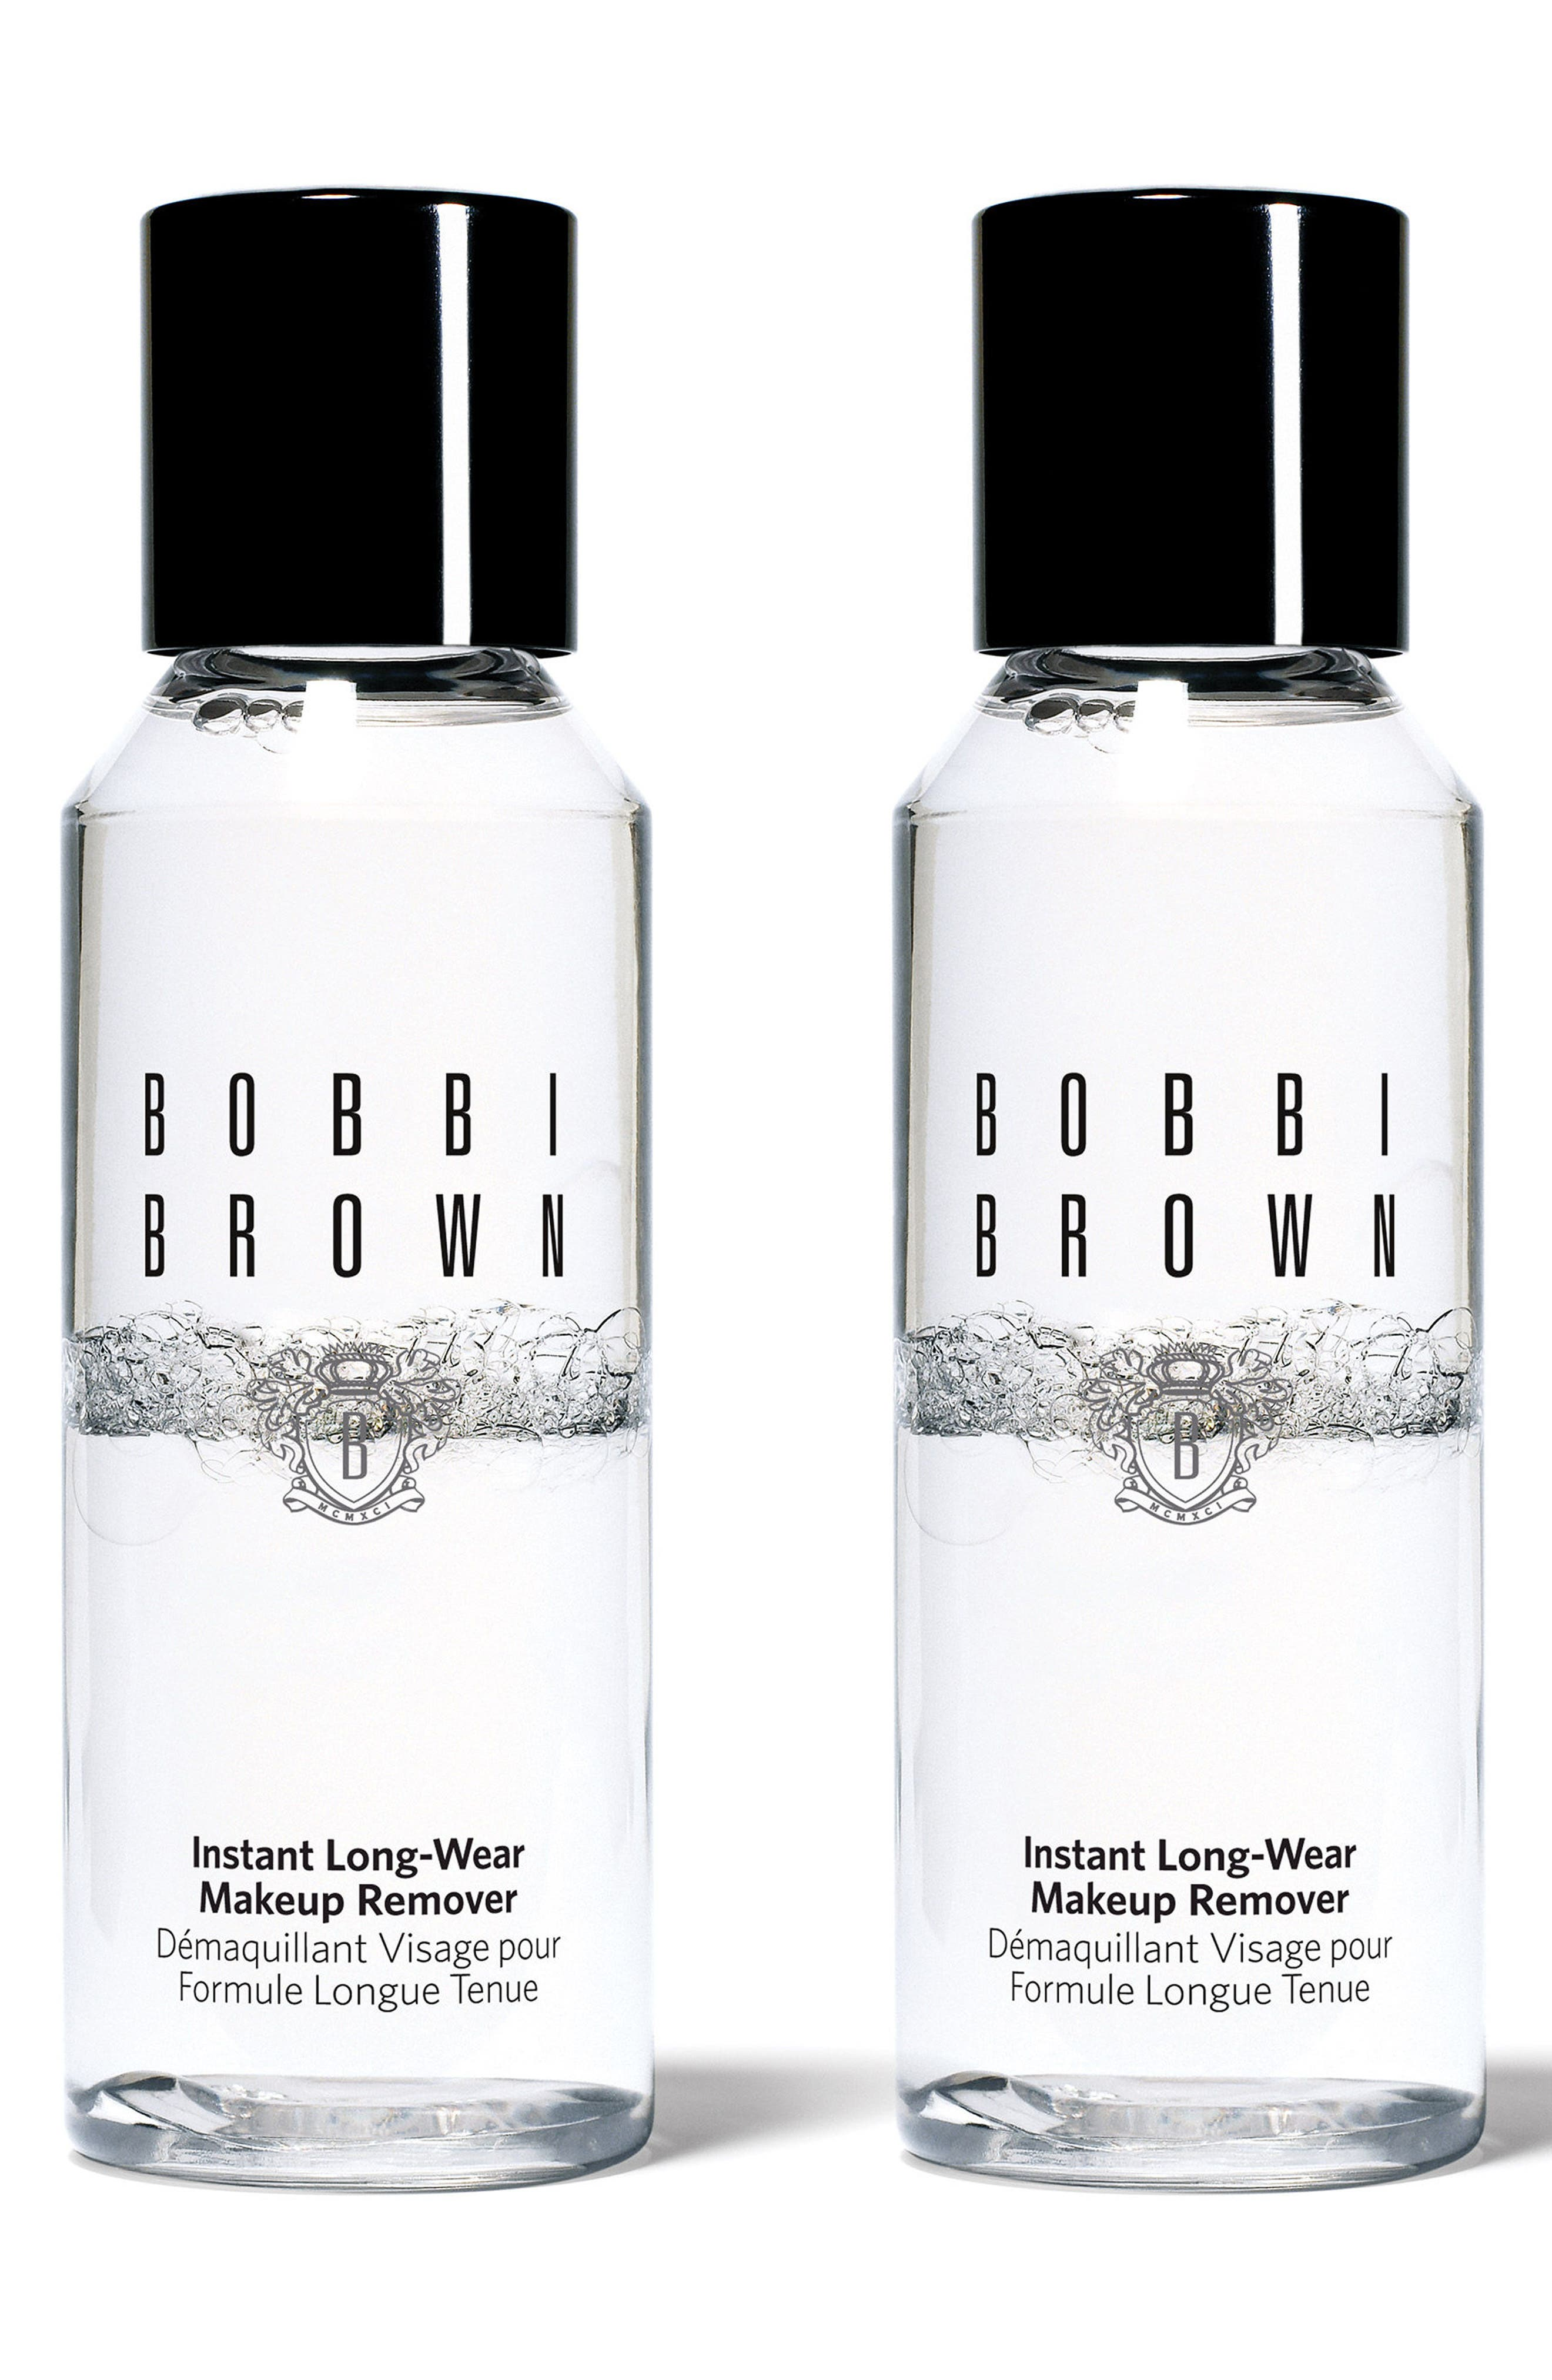 Bobbi Brown Instant Long-Wear Makeup Remover Duo (Nordstrom Exclusive) ($56 Value)